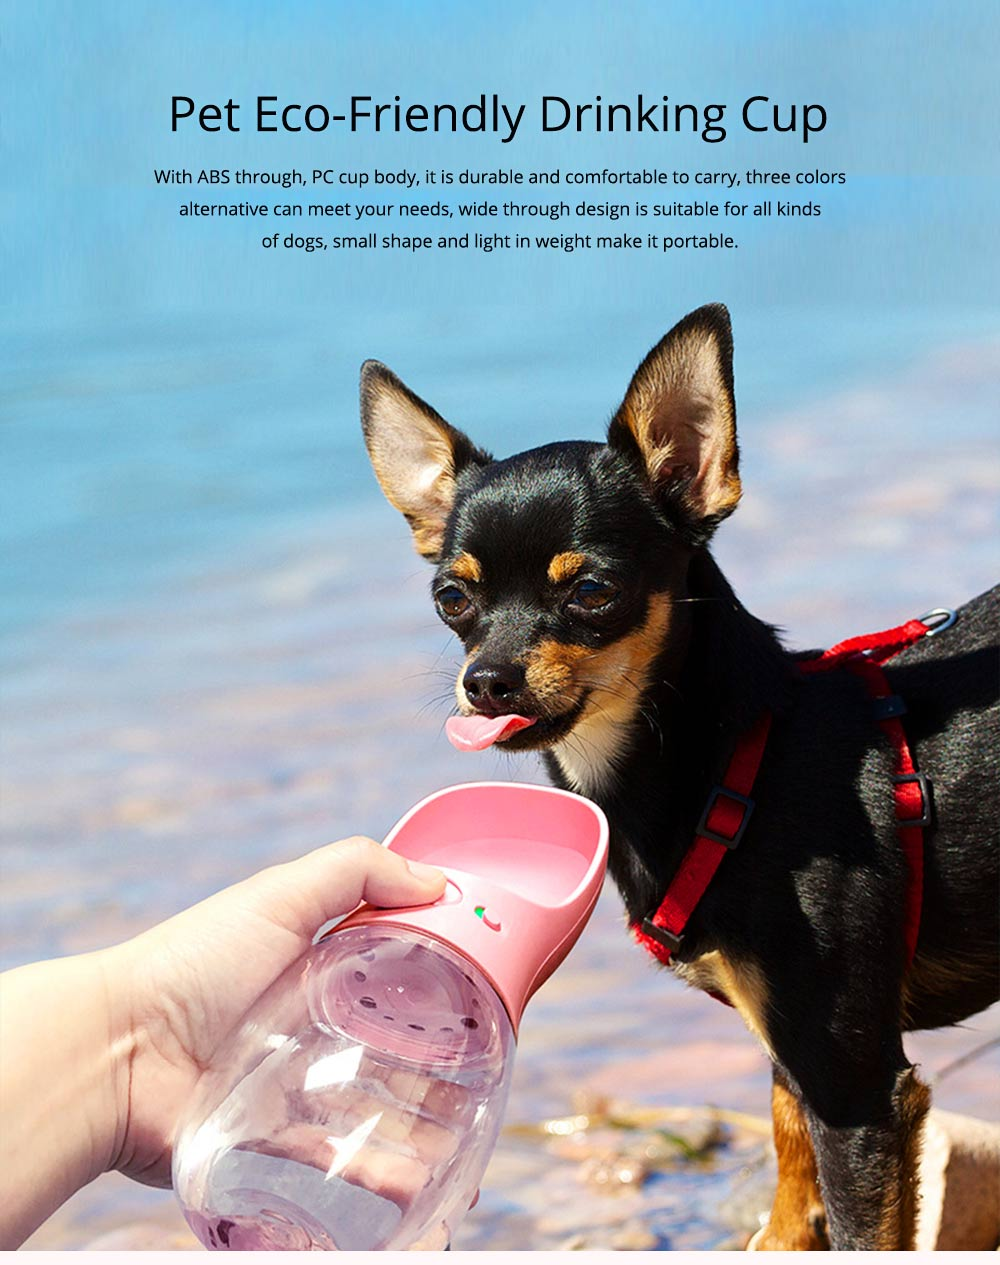 Pet Eco-friendly Drinking Cup Portable Drinking Bowl with Two Colors for Travel Outside 0